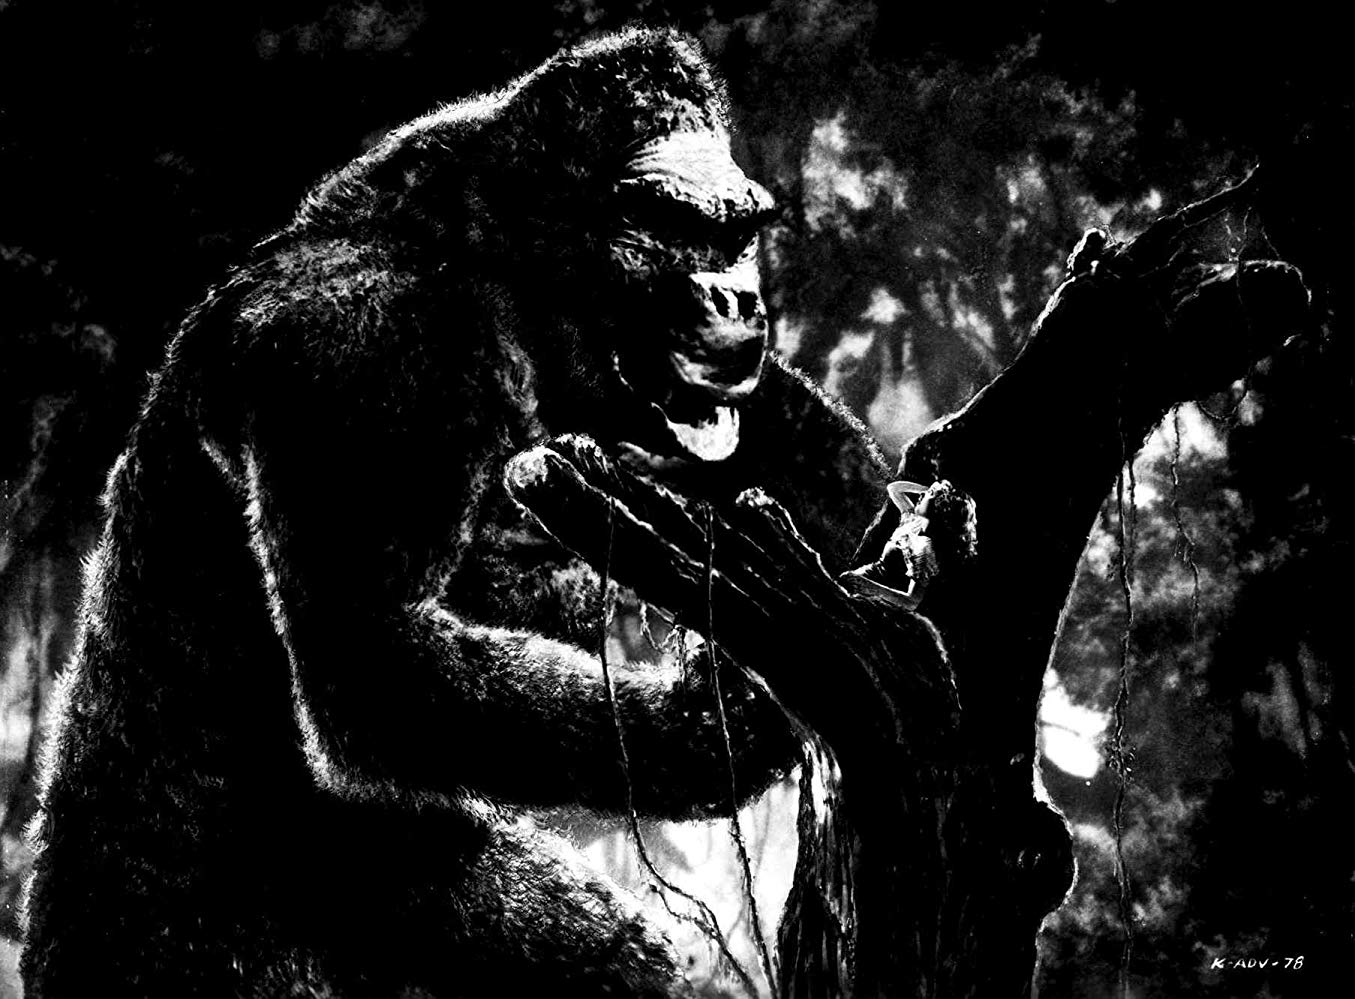 Kong rescues Fay Wray in King Kong (1933)